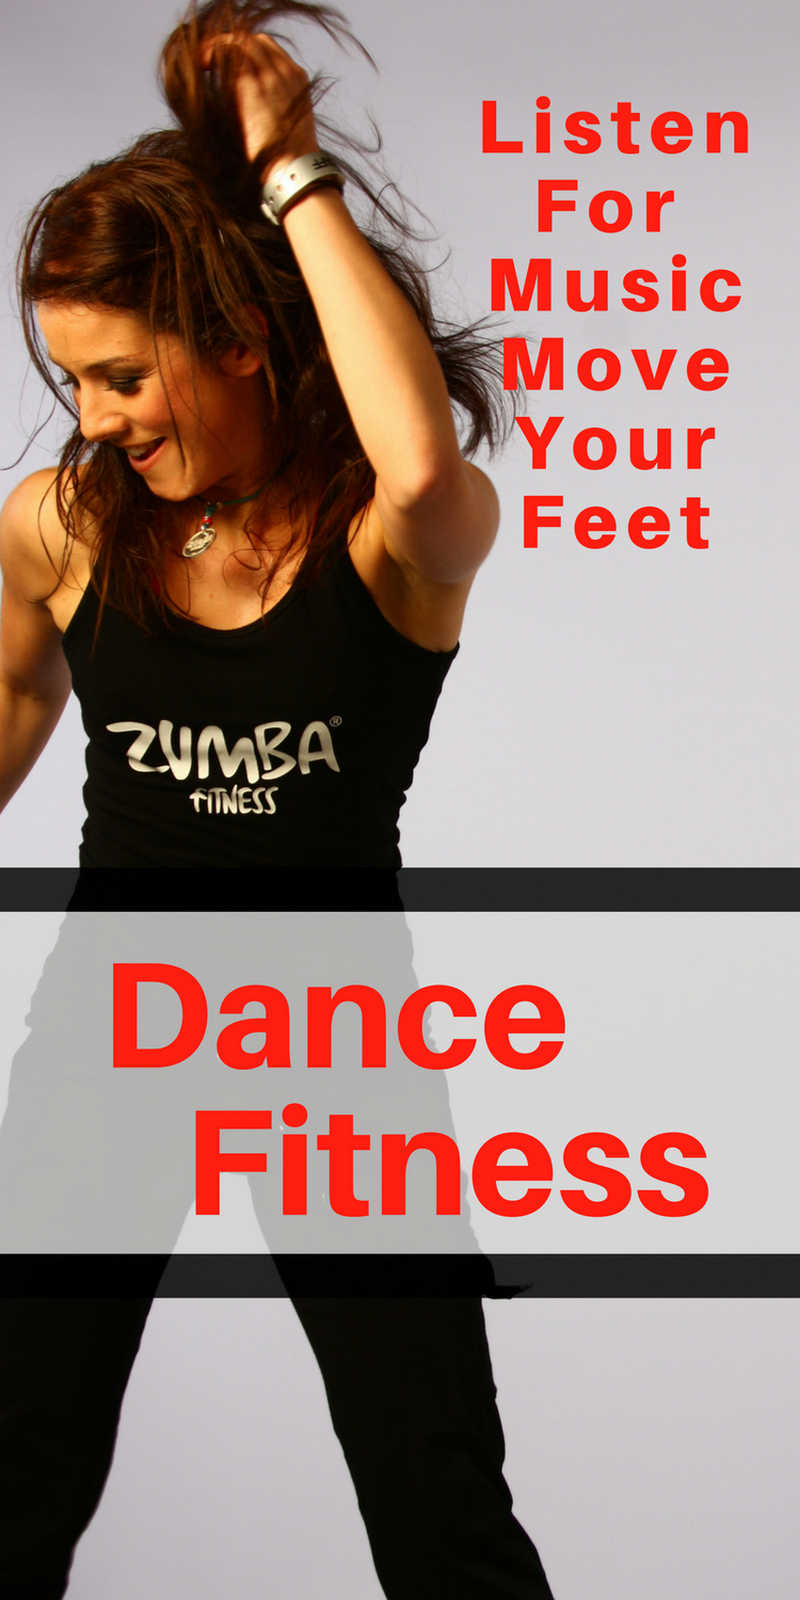 11 Dance Fitness Styles for Fun and Weight Loss   Listen For The Music & Dance Your Inches Away   Excercise    Excercise Motivation   Excercise Ball Workout   Excercise For Beginners   Excercise Motivation for Women   For Beginners At Home   For Beginners Gym   For Beginners Belly   For Beginners Over 50   Excercise Ball Workout For Men   Excercise Ball Workout For Beginners   Excercise Ball Workout Muffintop   Muffintop Exercise   Muffintop Challenge   Muffin top Workout   ARoadtoTravel.com